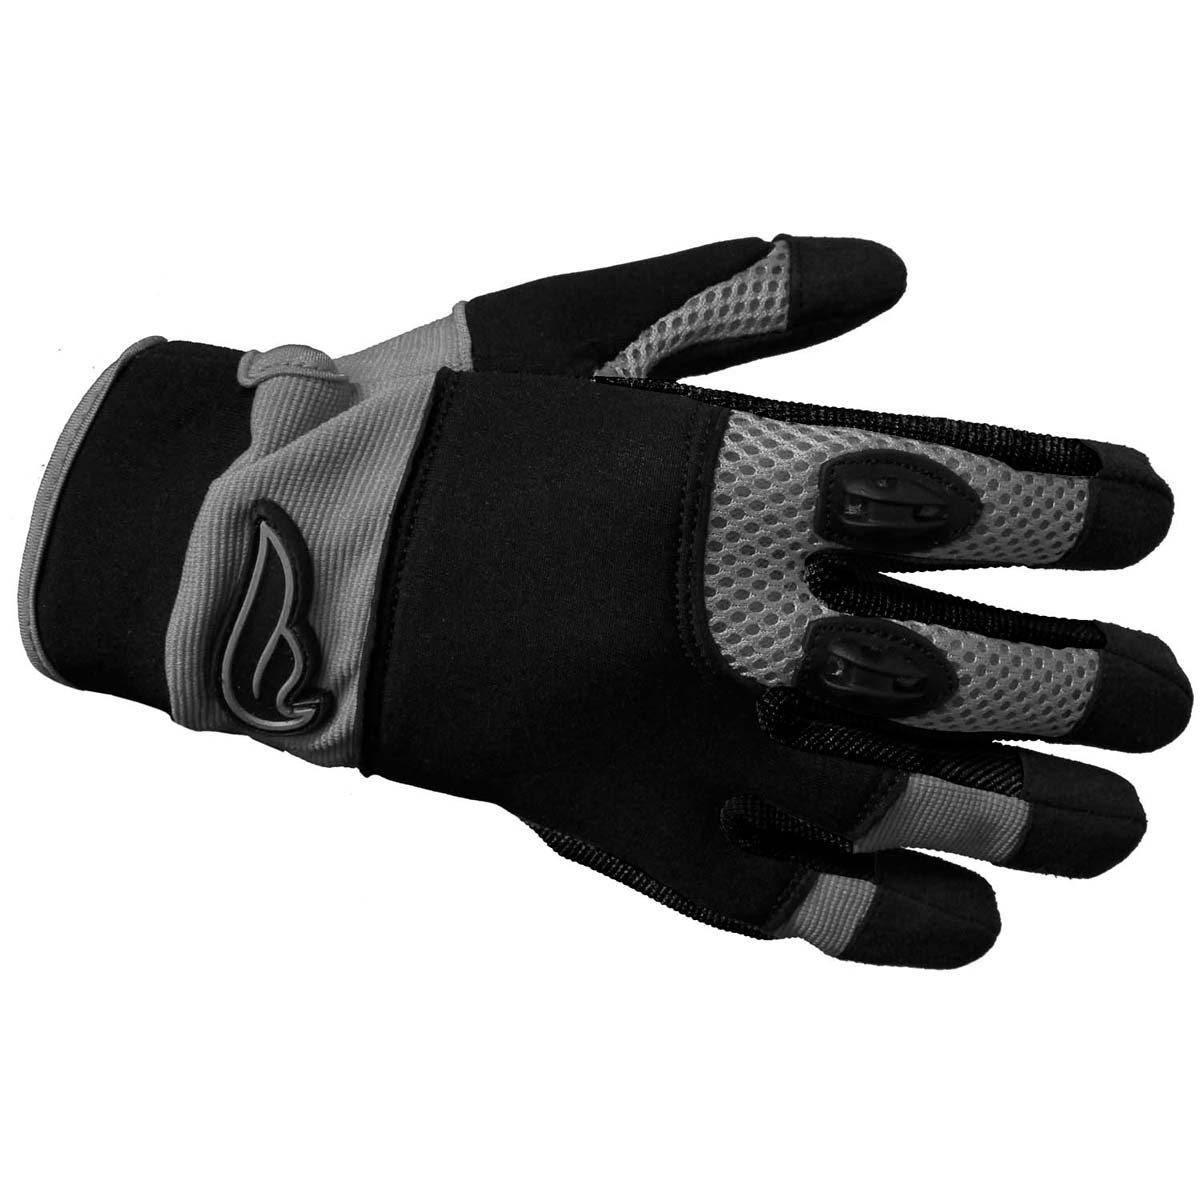 Fulmer Adult Cool Glove III Riding Shop Work MX ATV BMX Dirt Bike Off Road